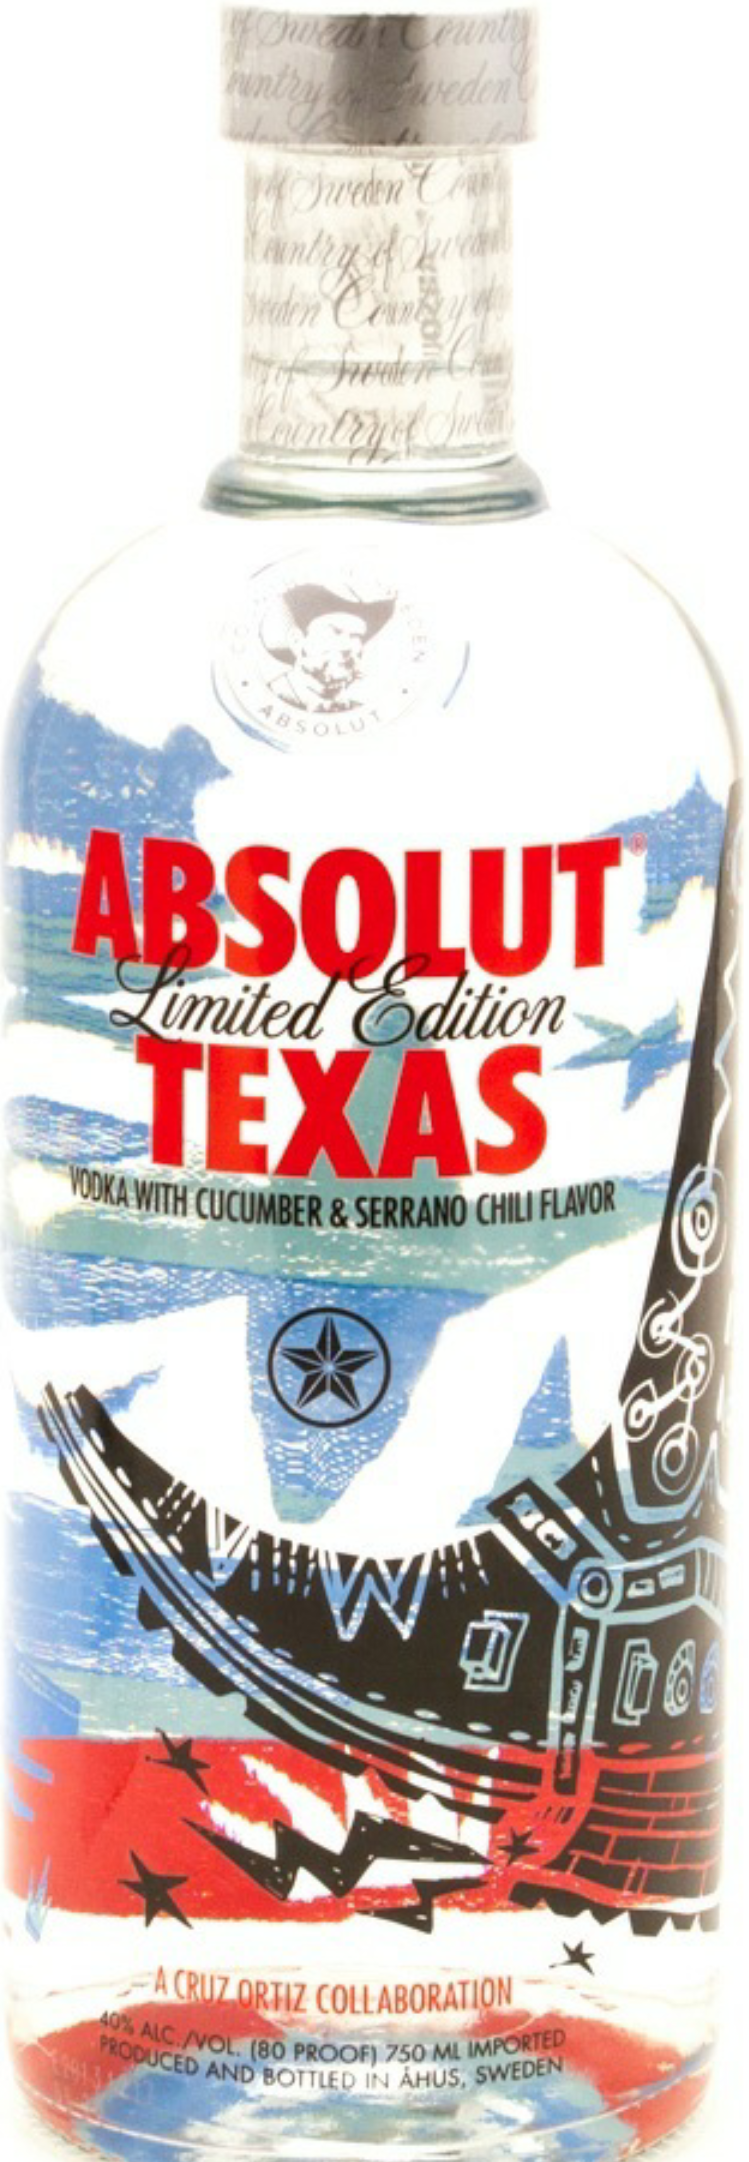 Absolut Texas Cucumber 750ml